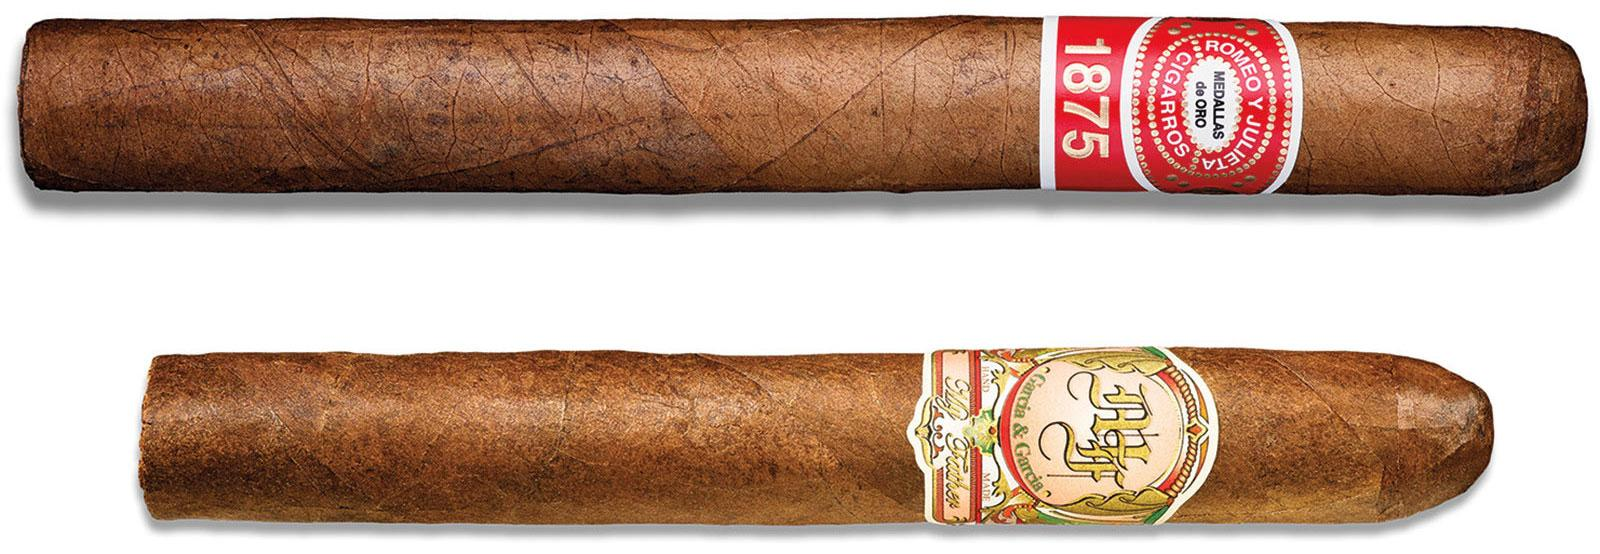 We paired a Romeo y Julieta 1875 Deluxe No. 1 (91 points, top) and a My Father No. 3 Crema (92, bottom) with an array of smoky Scotches.